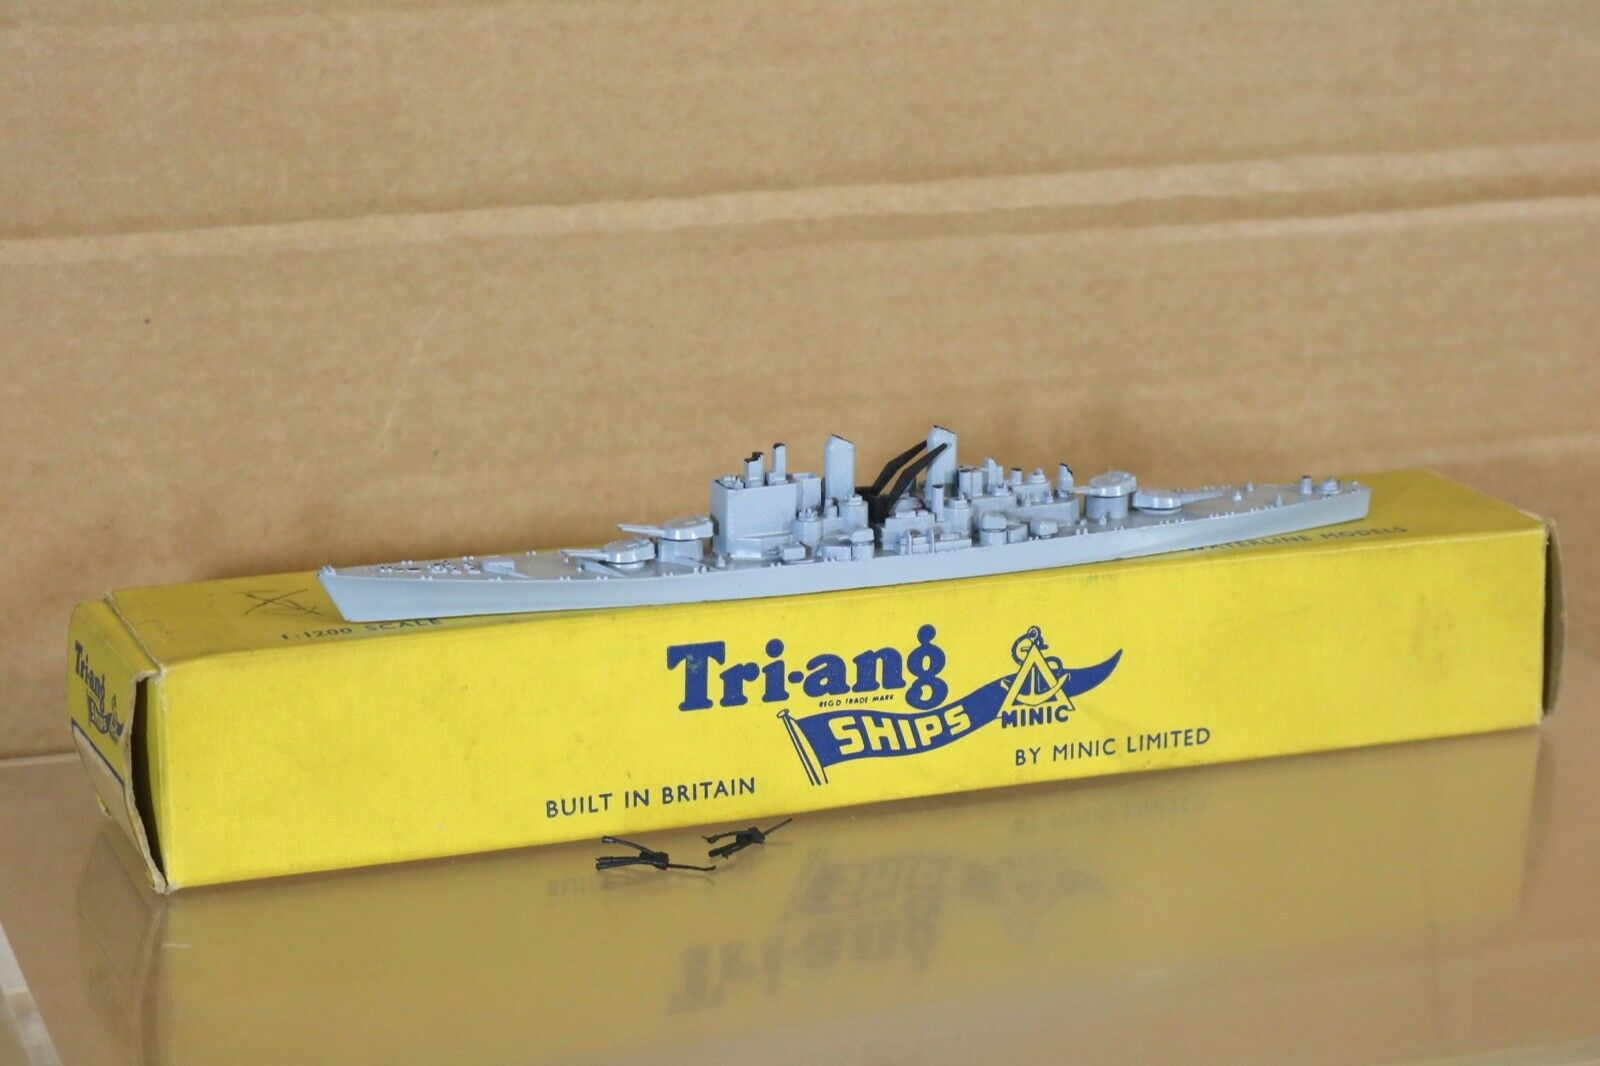 TRIANG MINIC SHIPS M741 ROYAL NAVY RN GREY HMS VANGUARD BATTLESHIP BOXED 2 nq